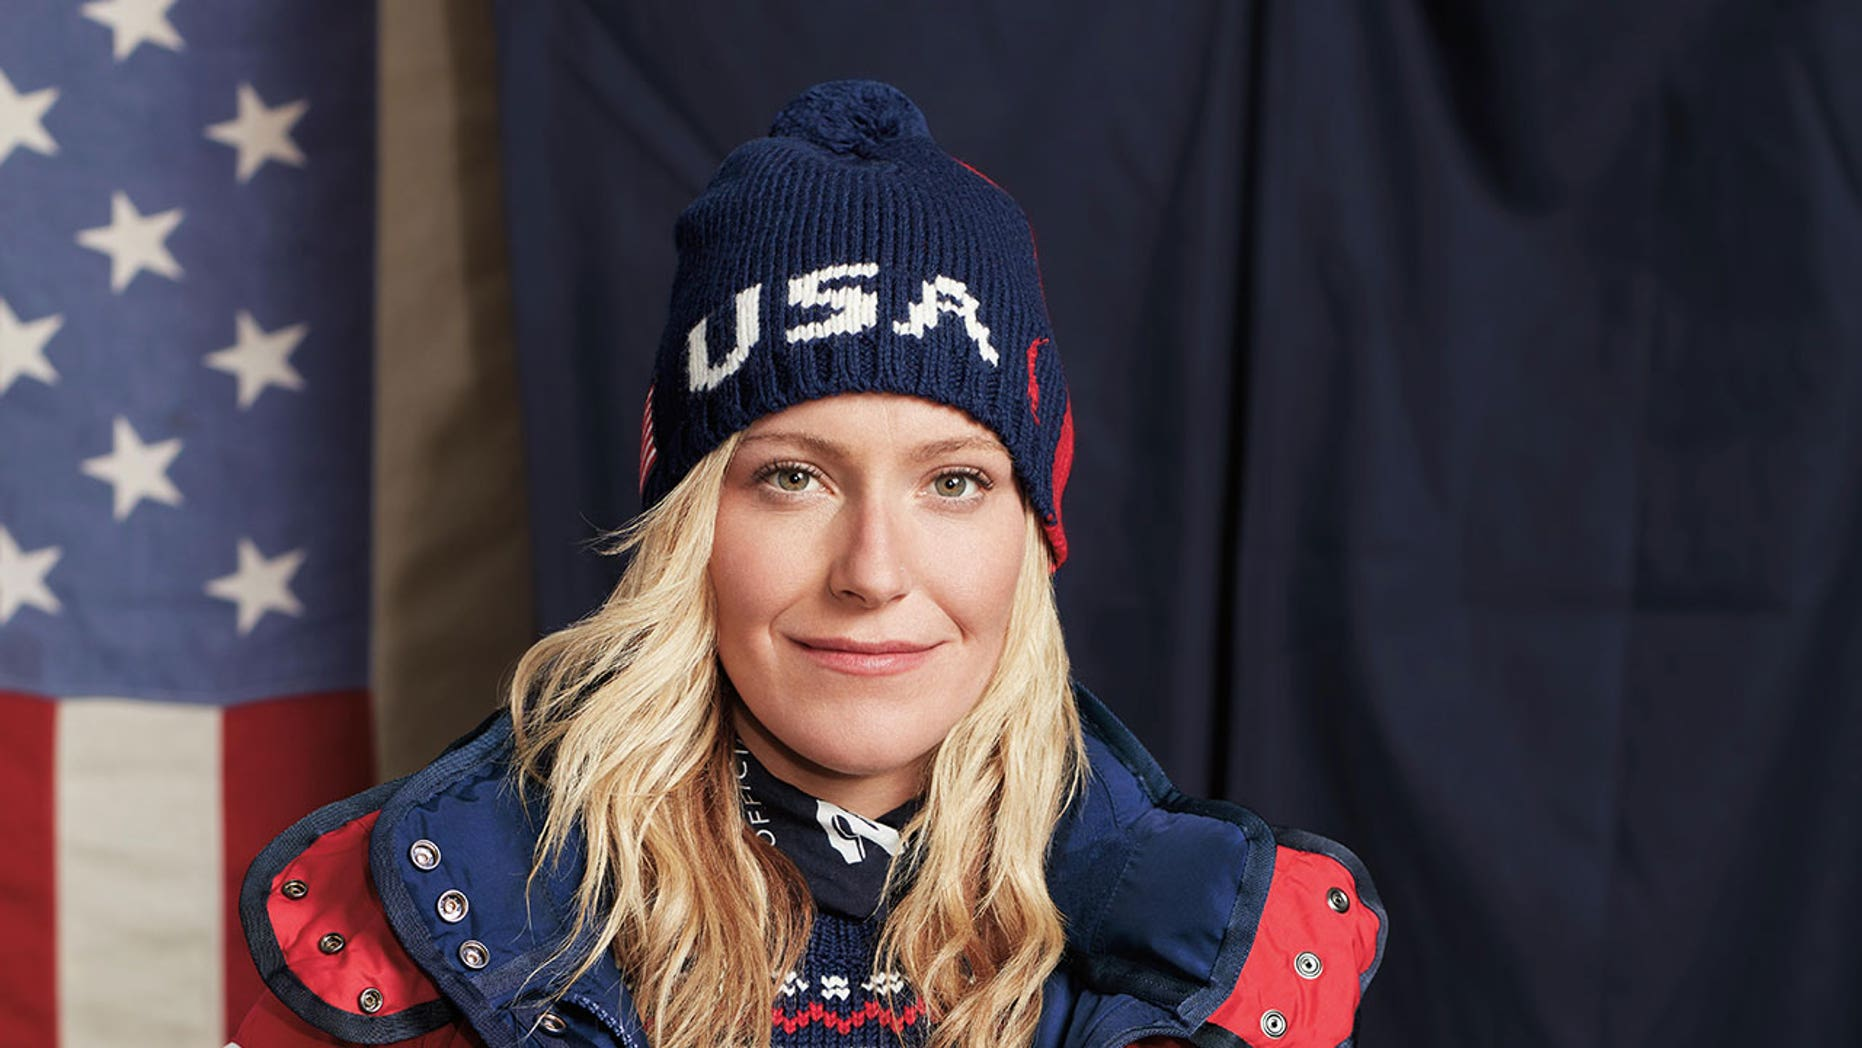 Snowboarder Jamie Anderson will be wearing this specially designed Ralph Lauren jacket containing a built-in heating element at the Winter Olympics in Pyeongchang.